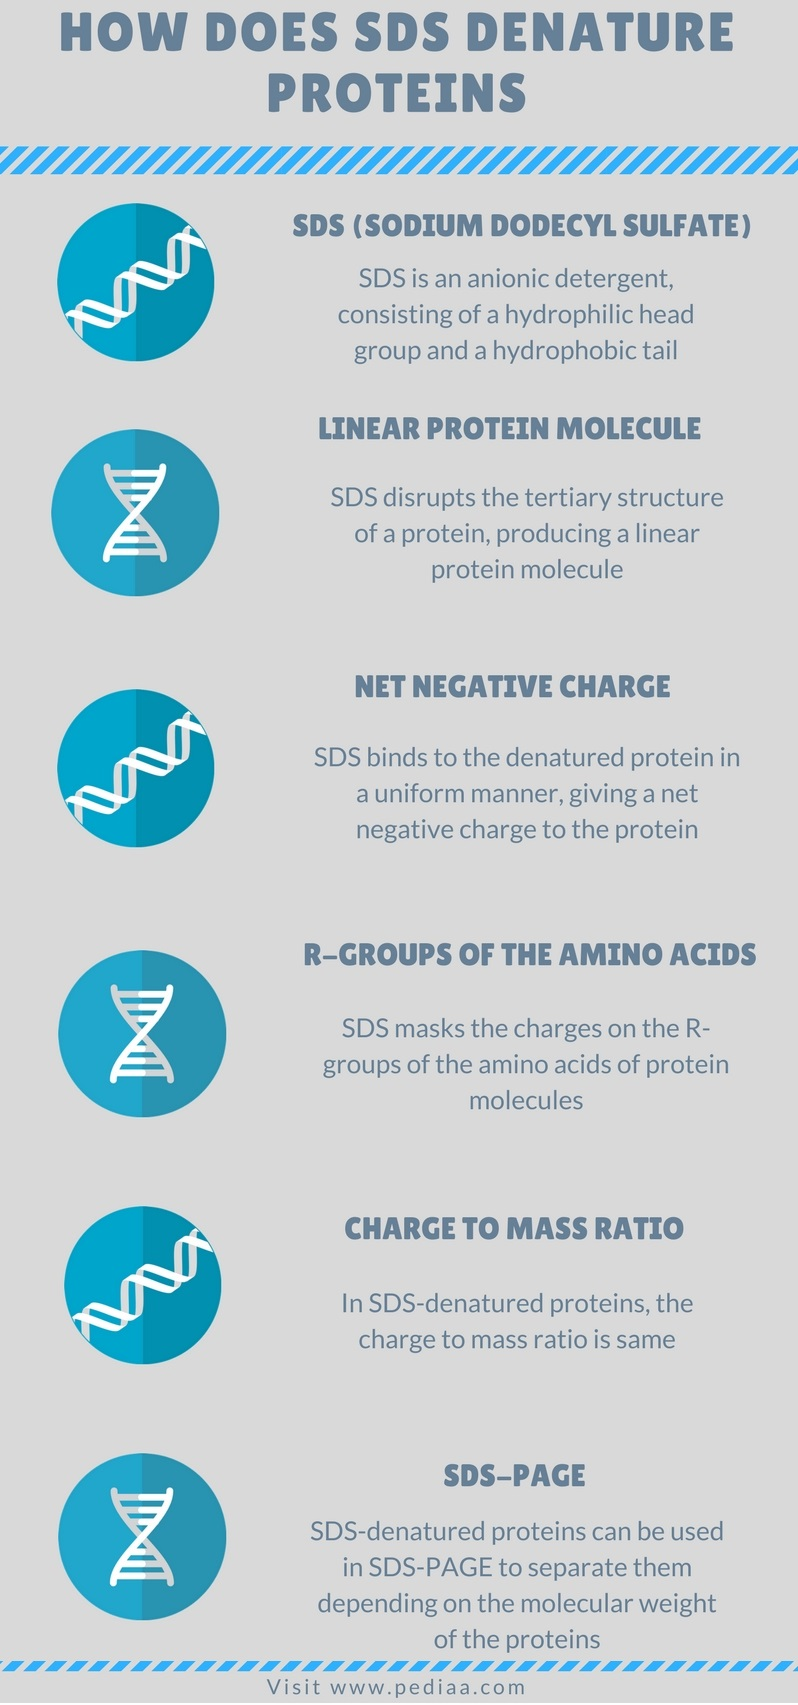 How Does SDS Denature Proteins - Infograph